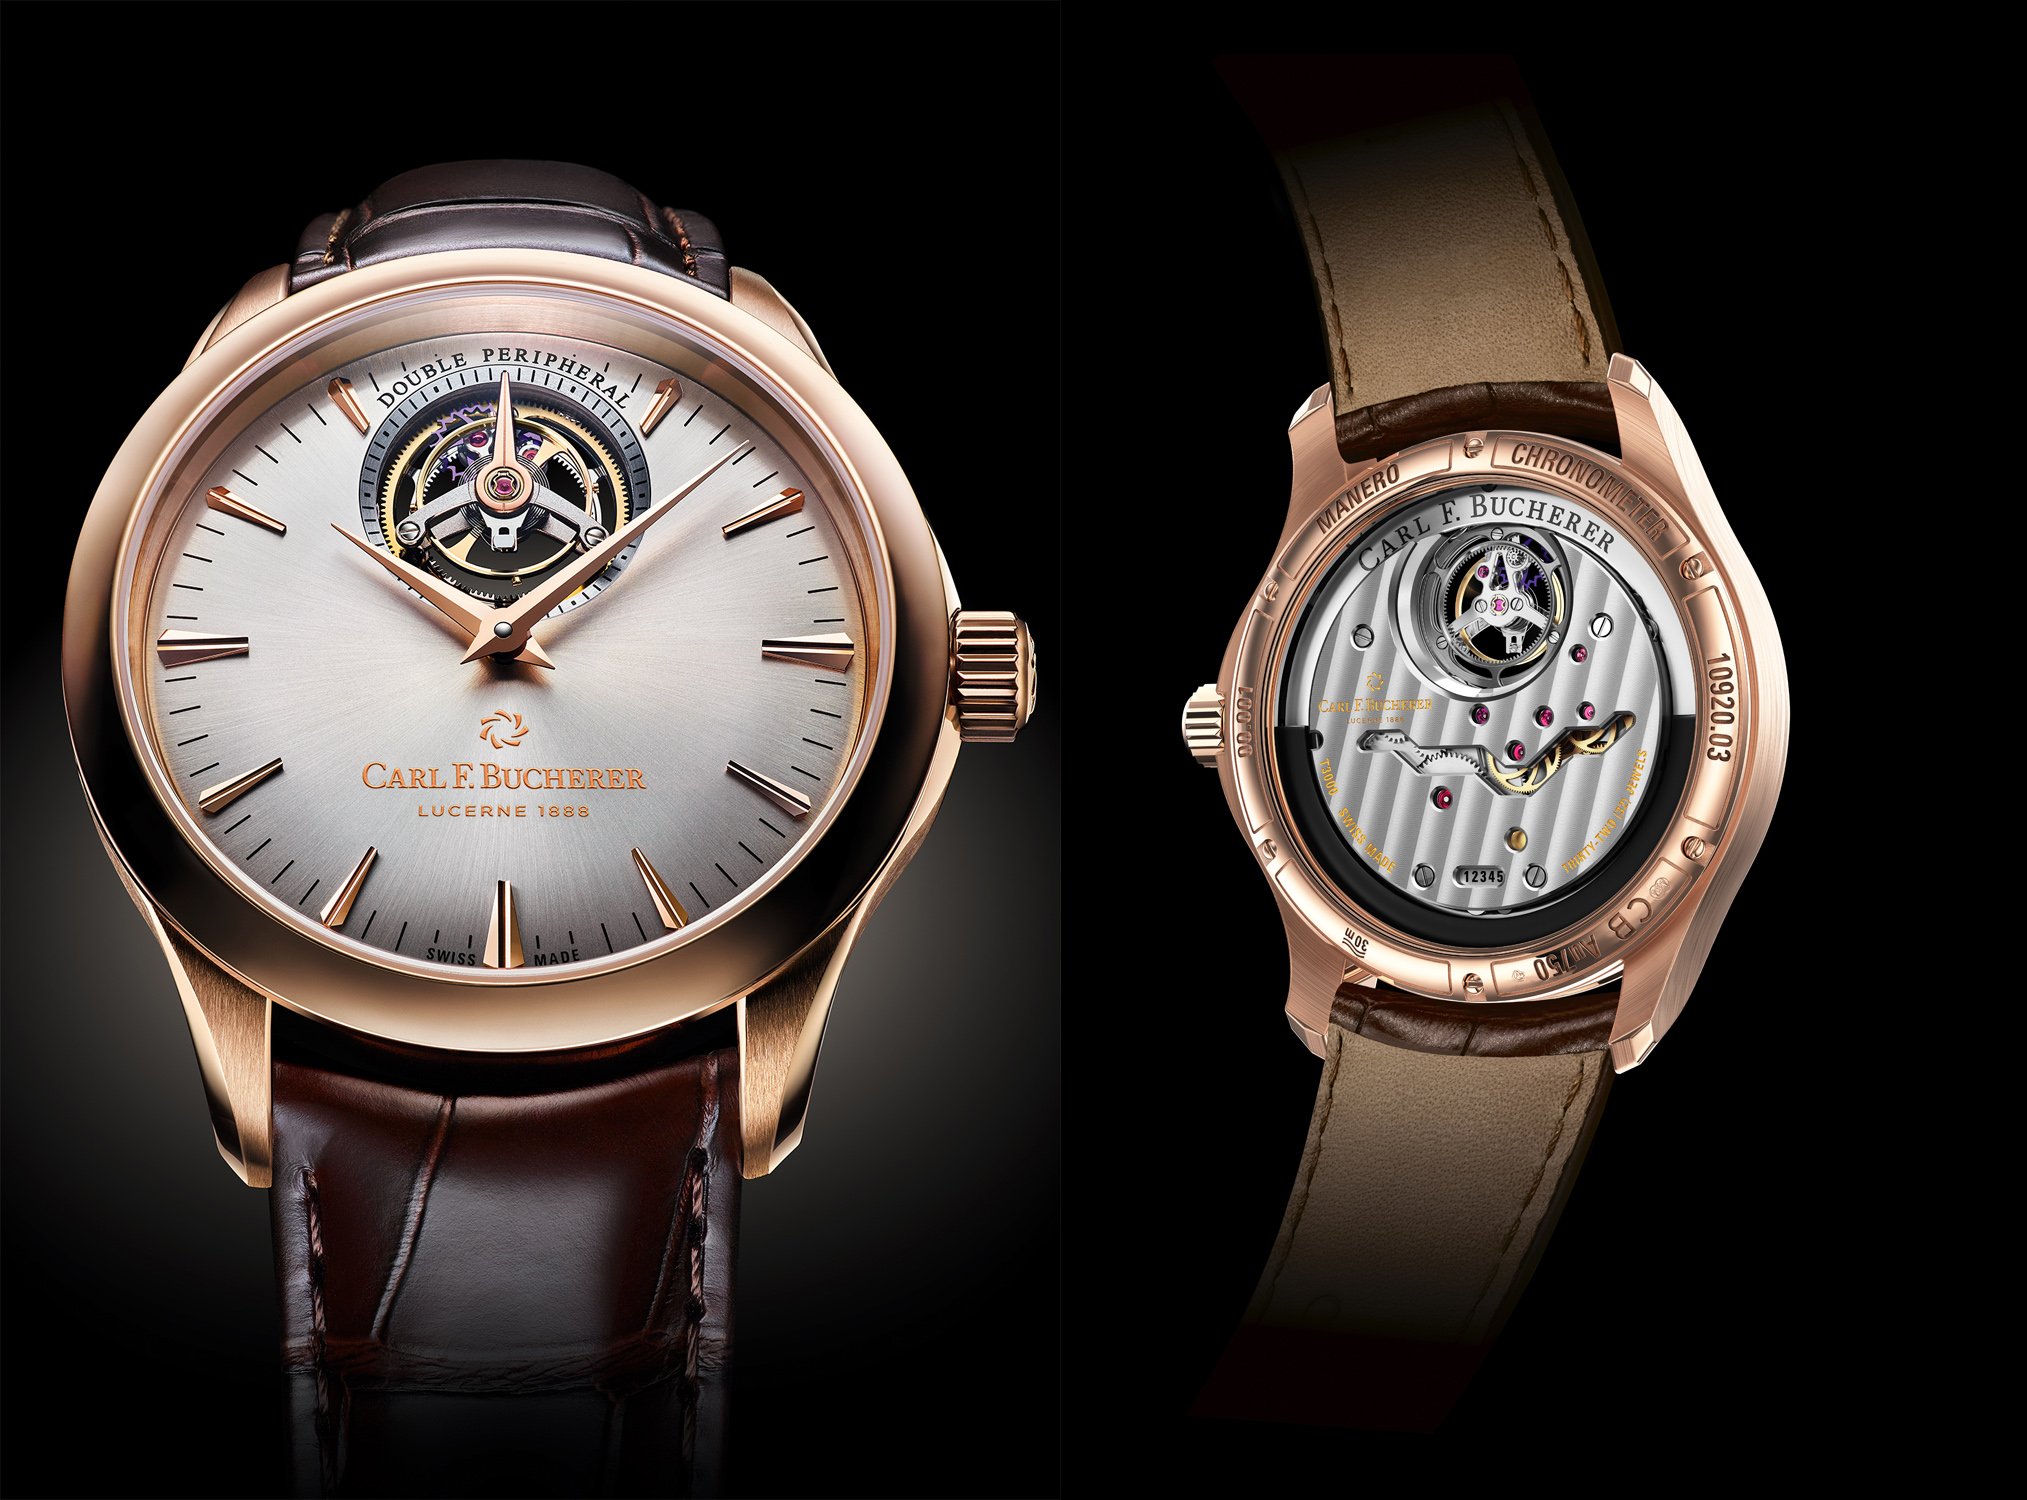 Heritage Tourbillon DoublePeripheral Limited Edition